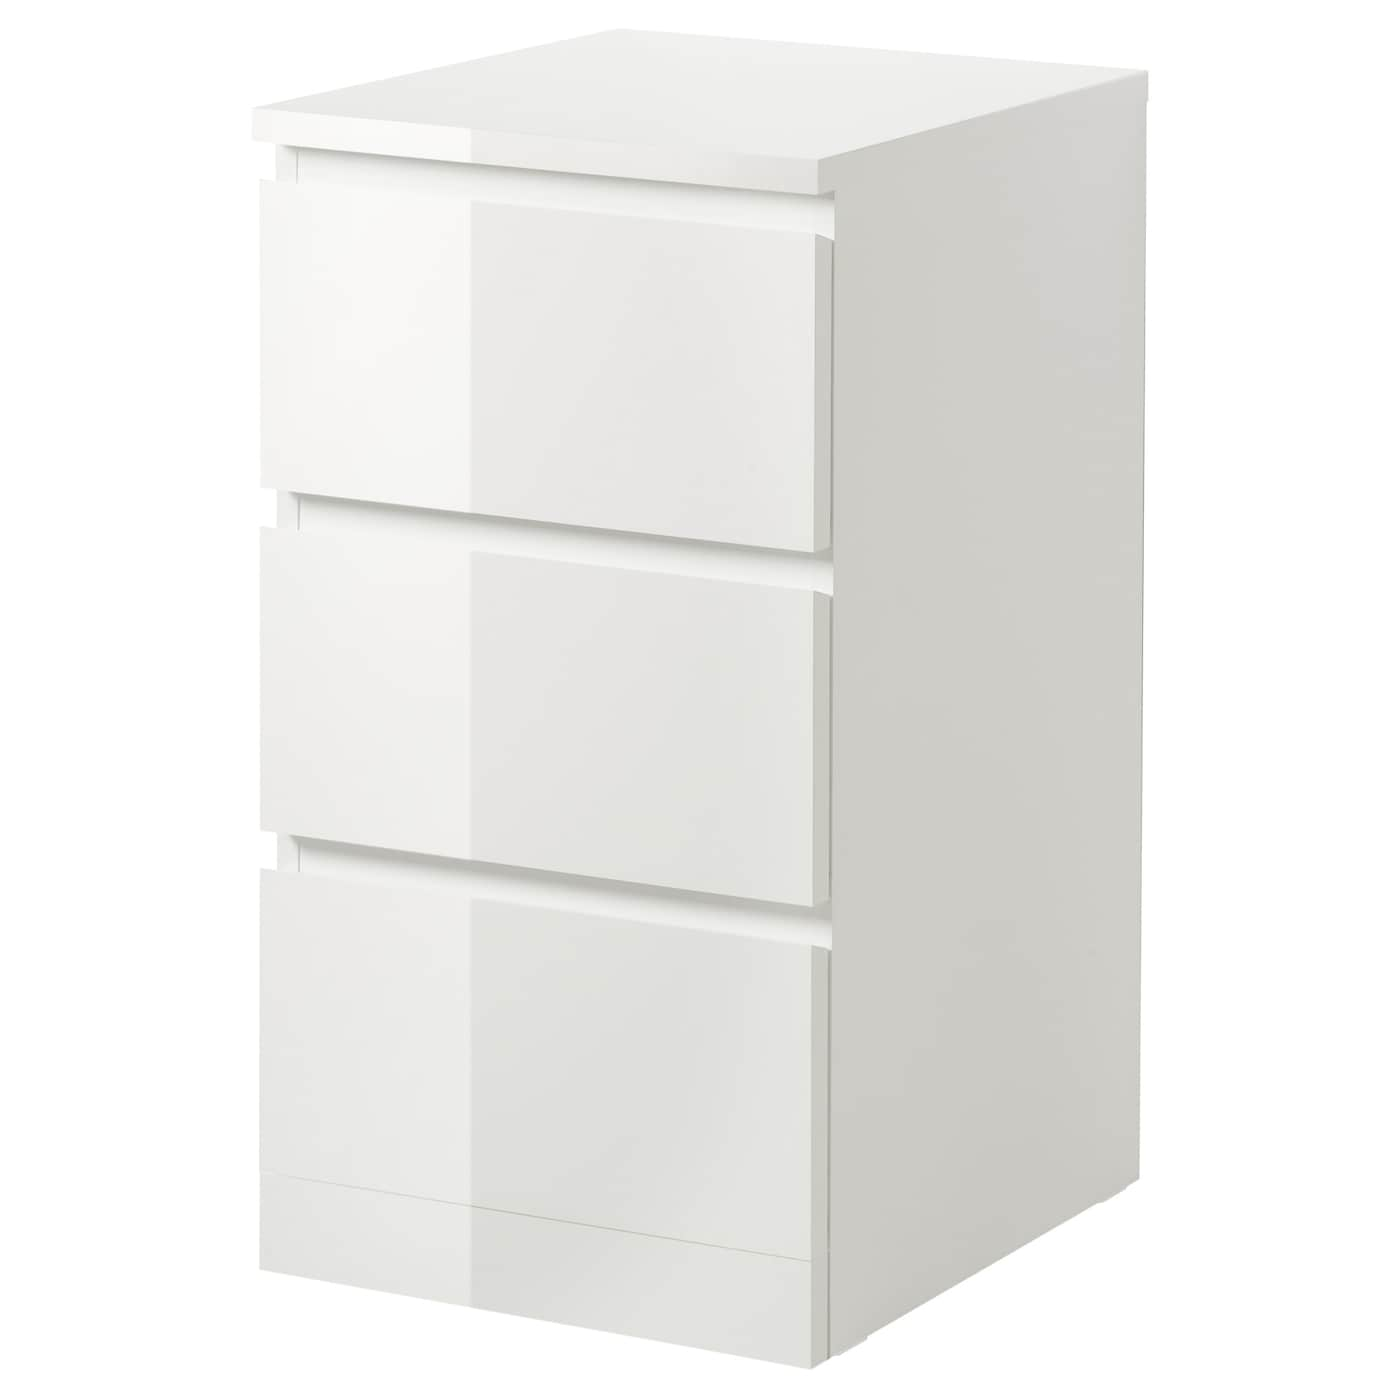 MALM Chest Of 3 Drawers High Gloss White 40x78 Cm IKEA